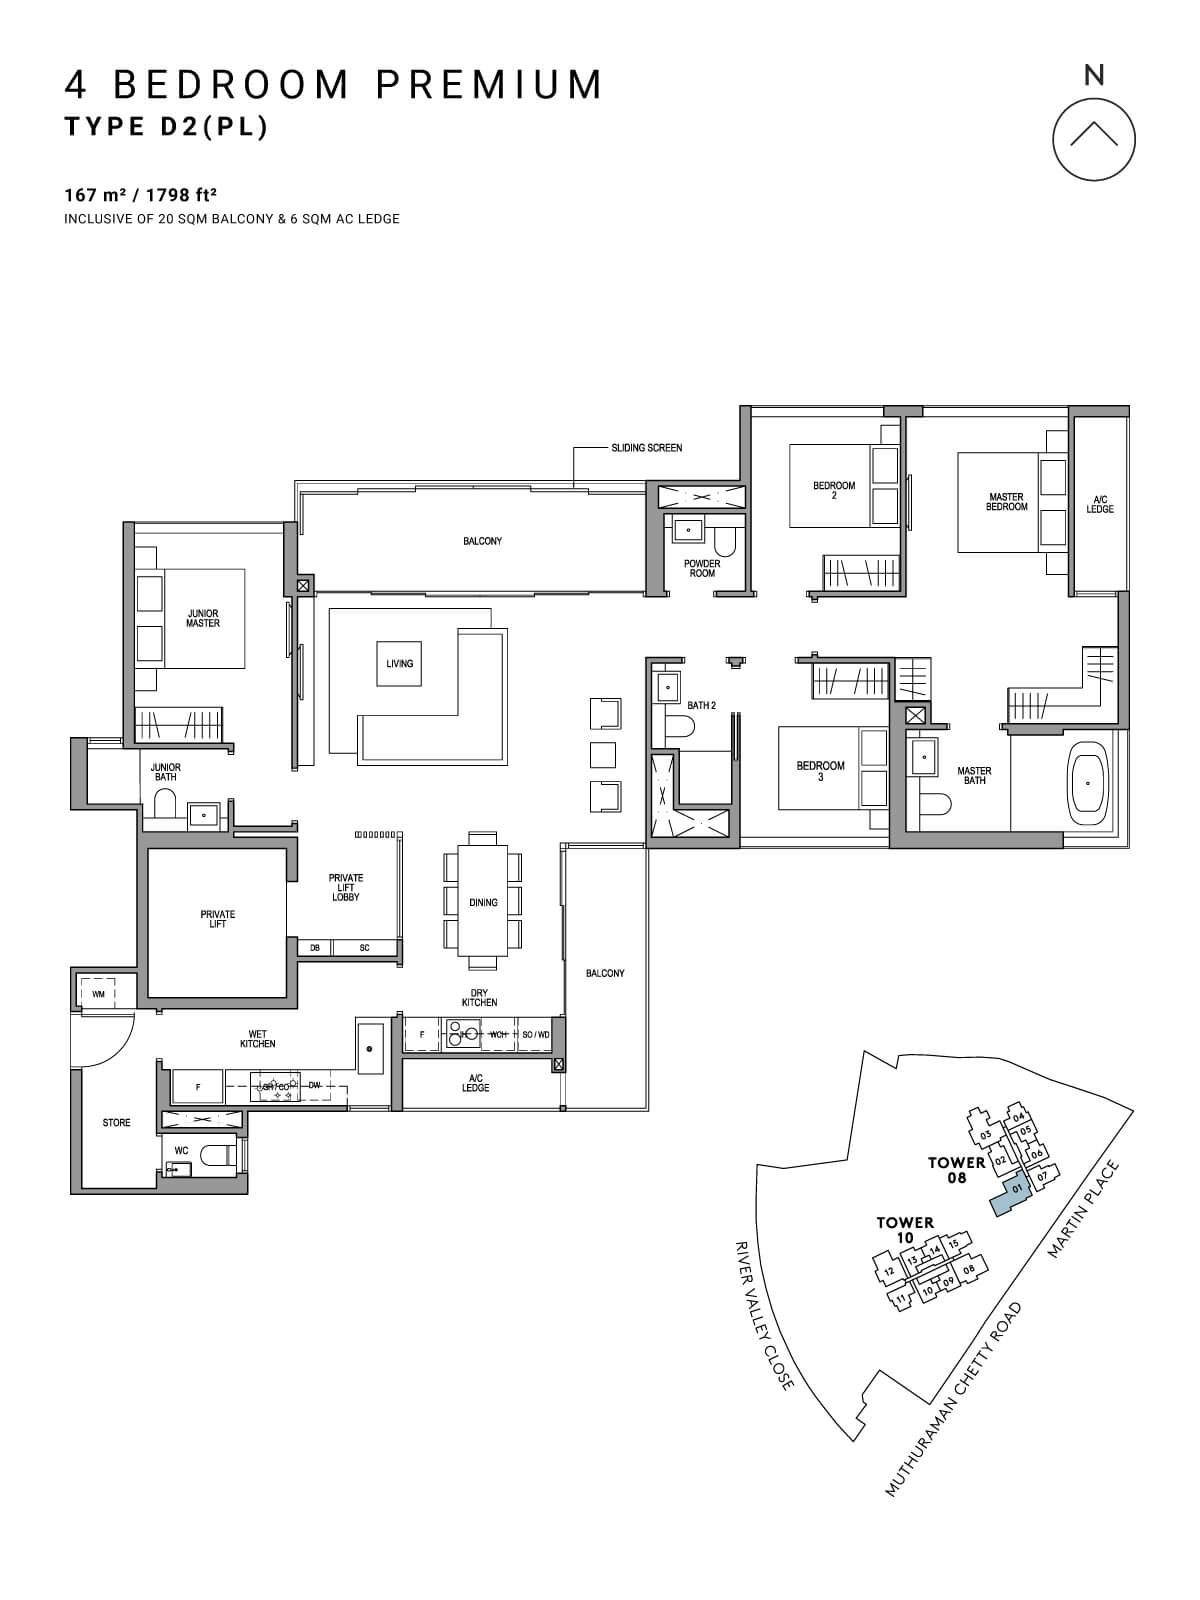 Martin Modern Floor Plan 4 Bedroom Premium Type D2(PL)